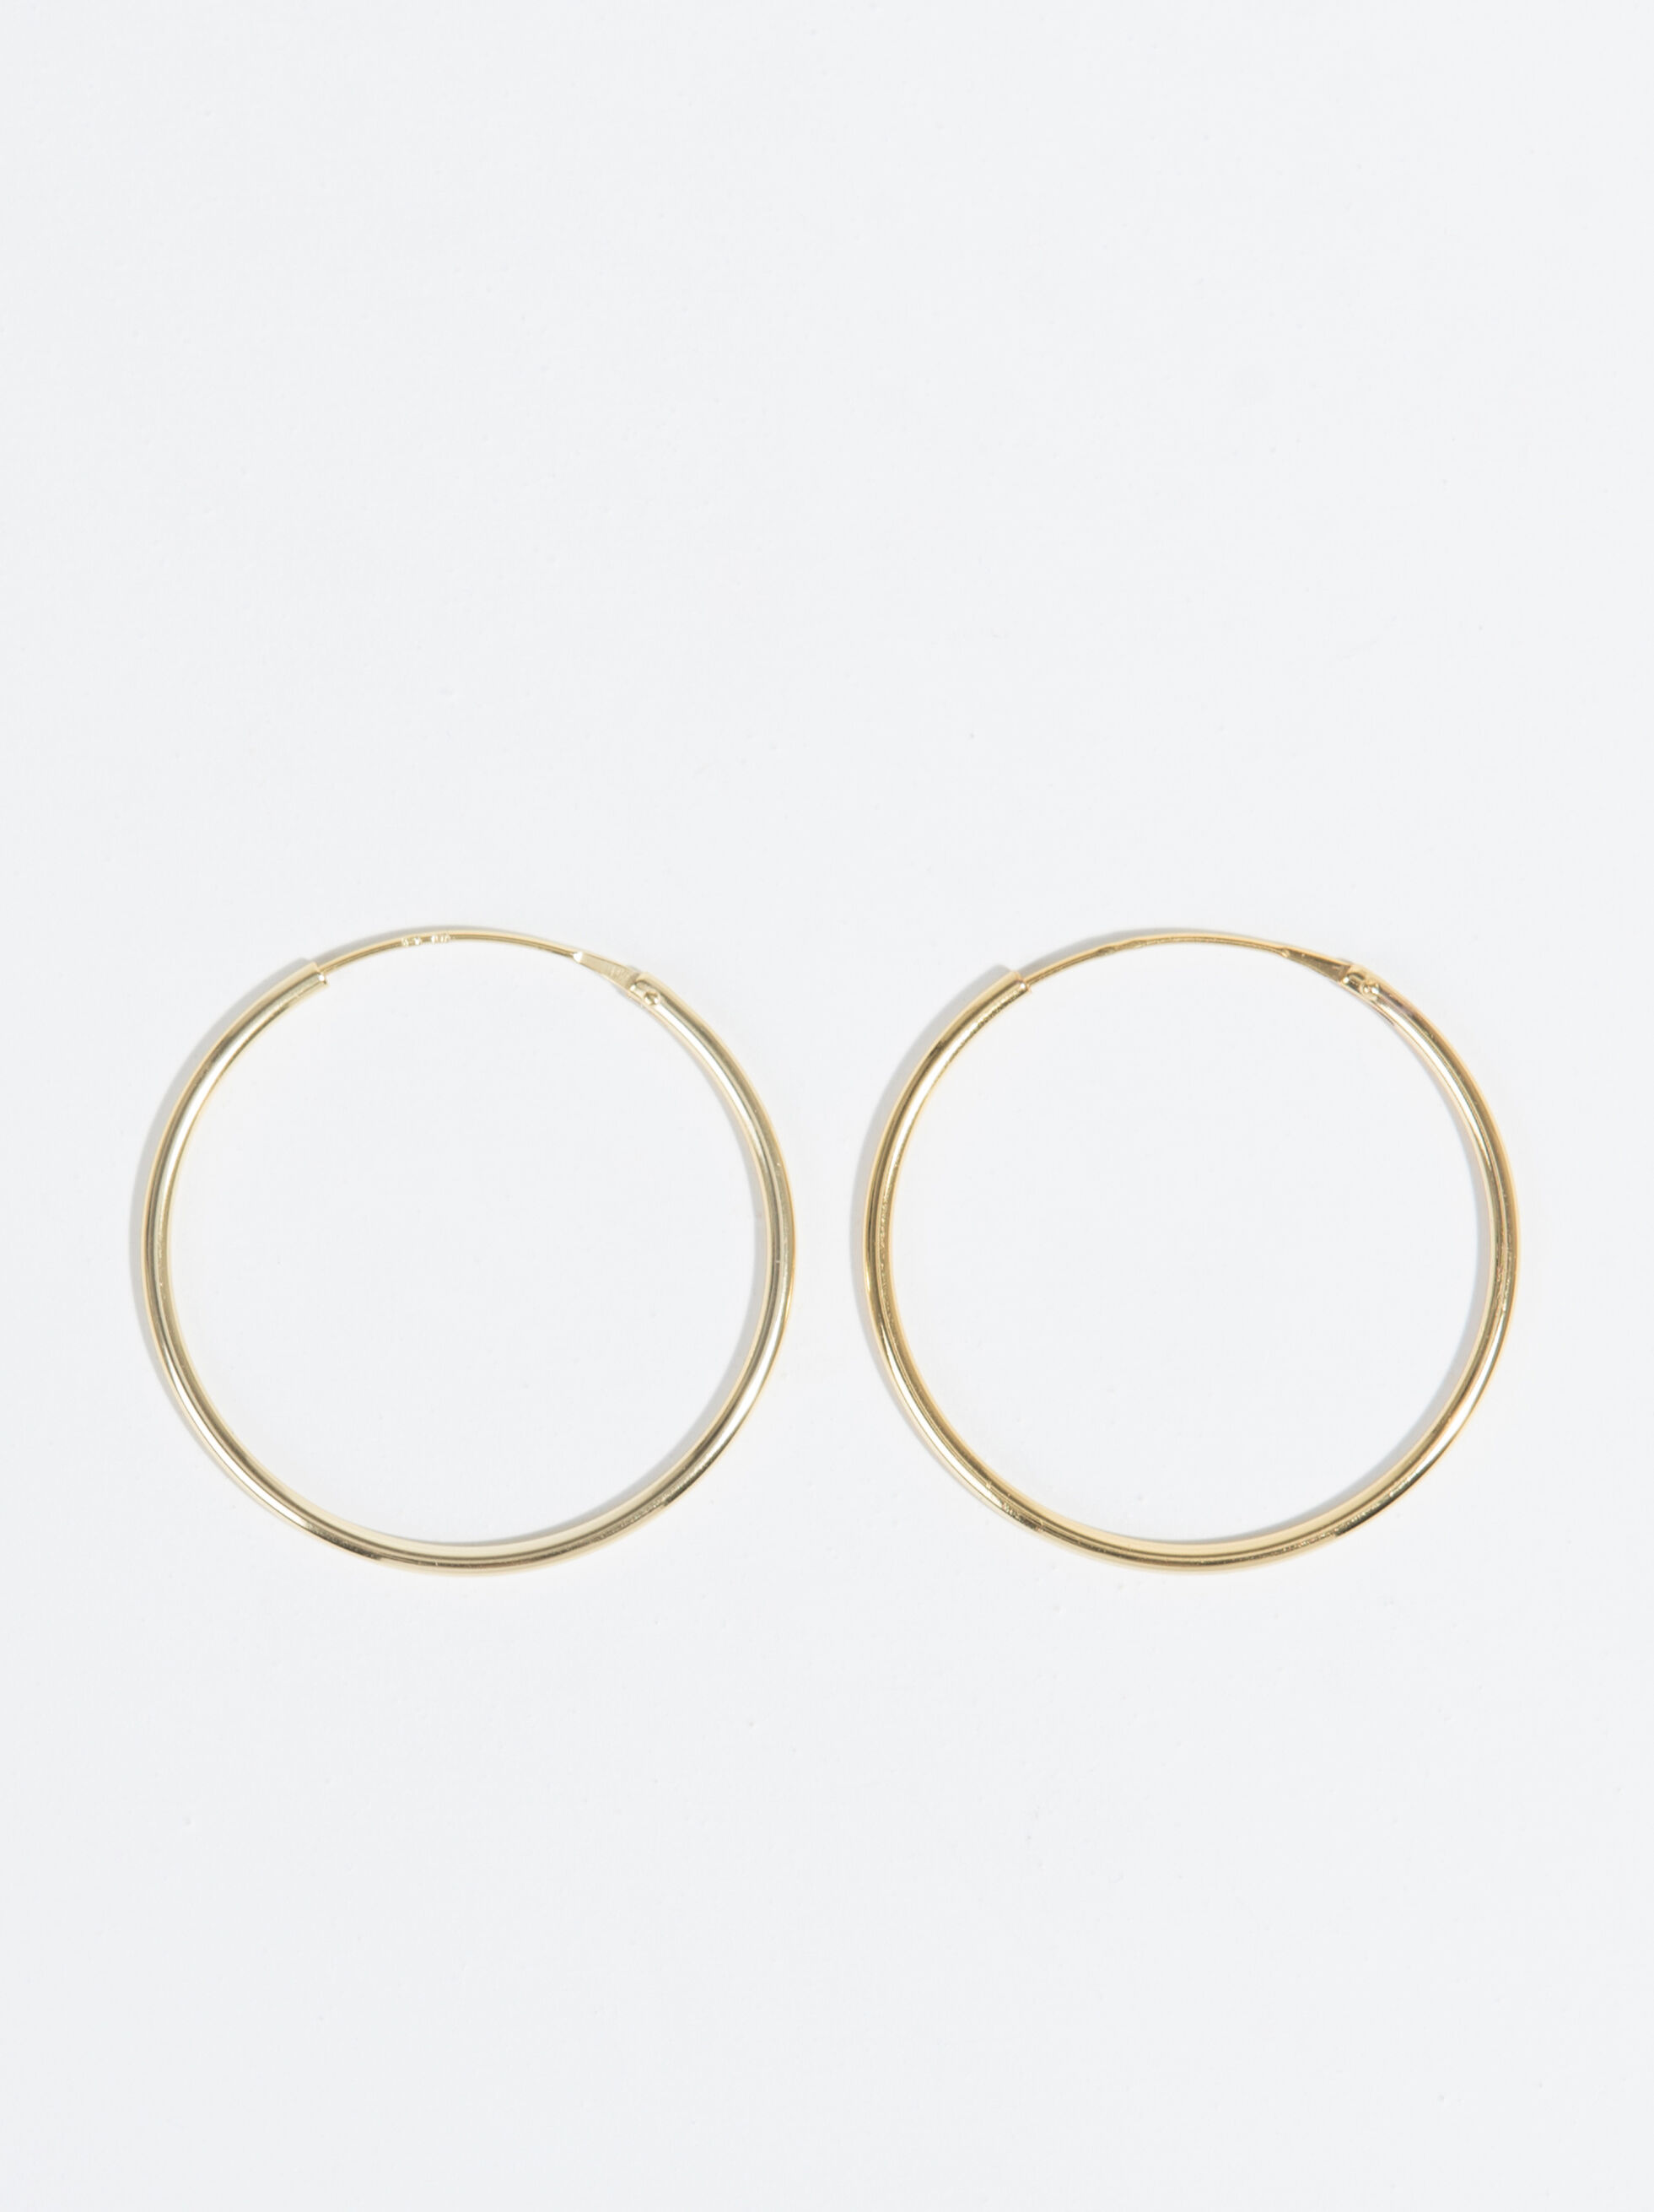 earrings zoom tiny listing fullxfull golden il nwpz ring thin gold hoops